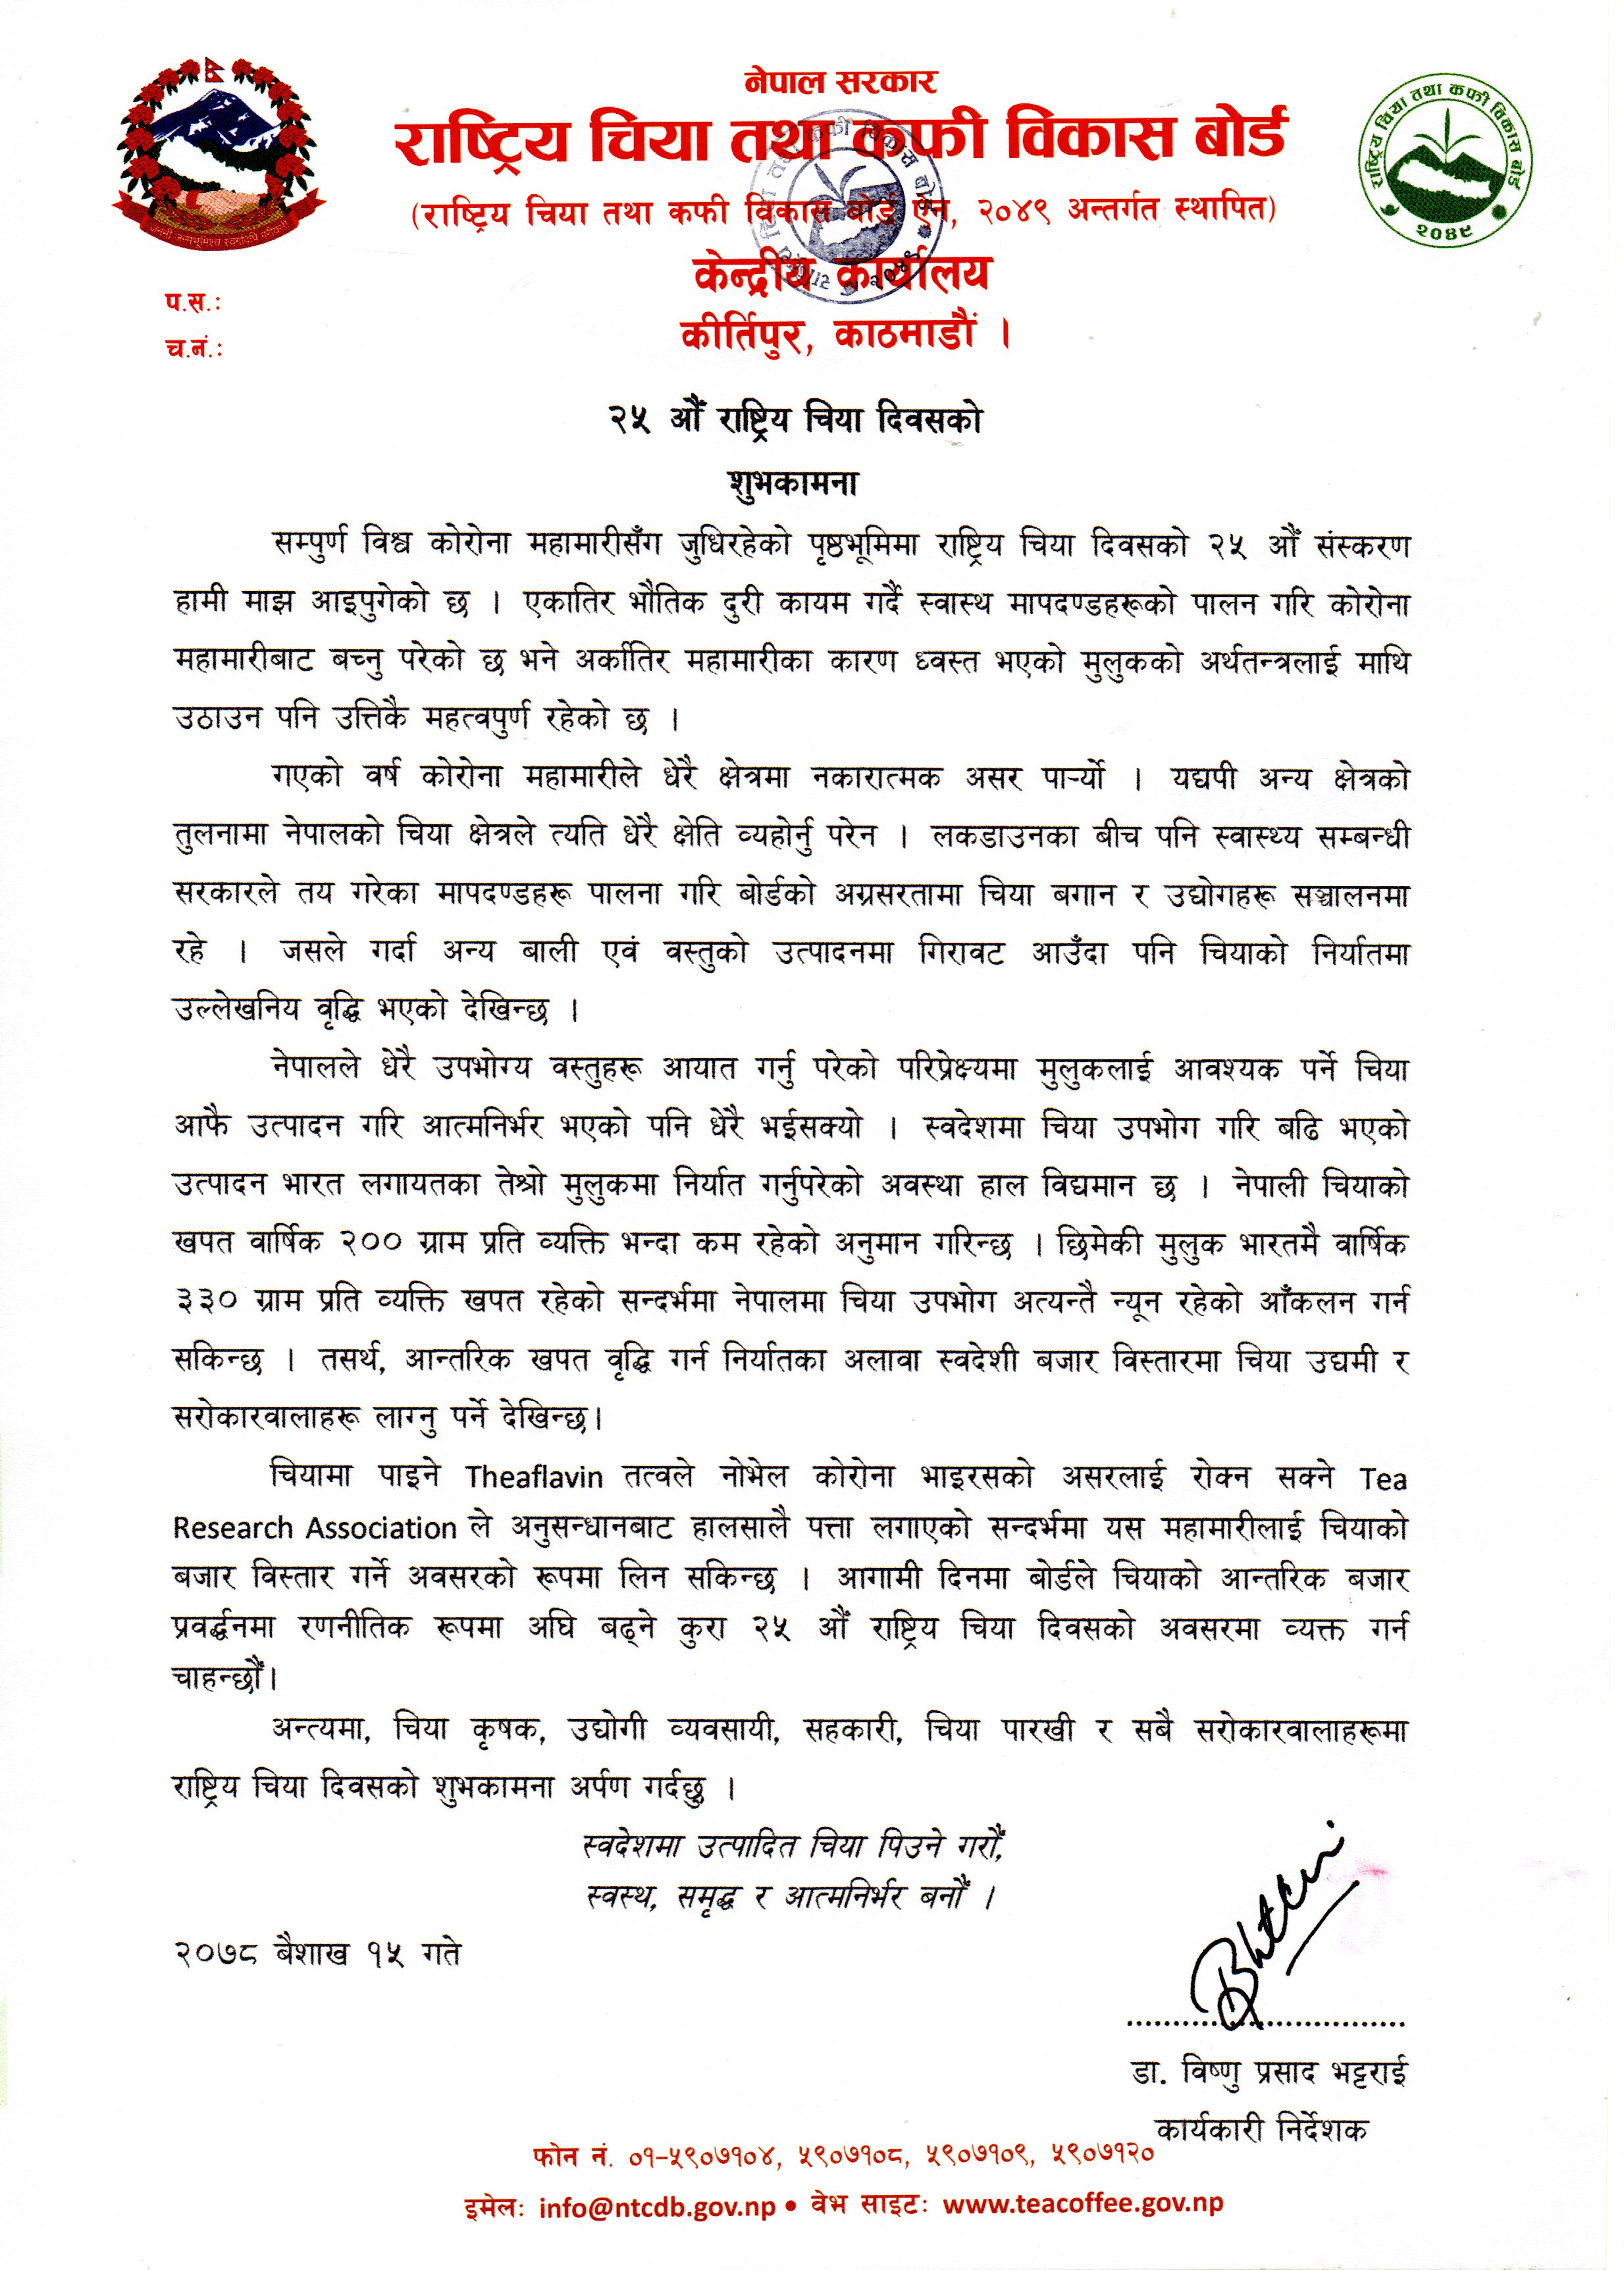 Message of Executive Director on the occasion of 25th National Tea Day